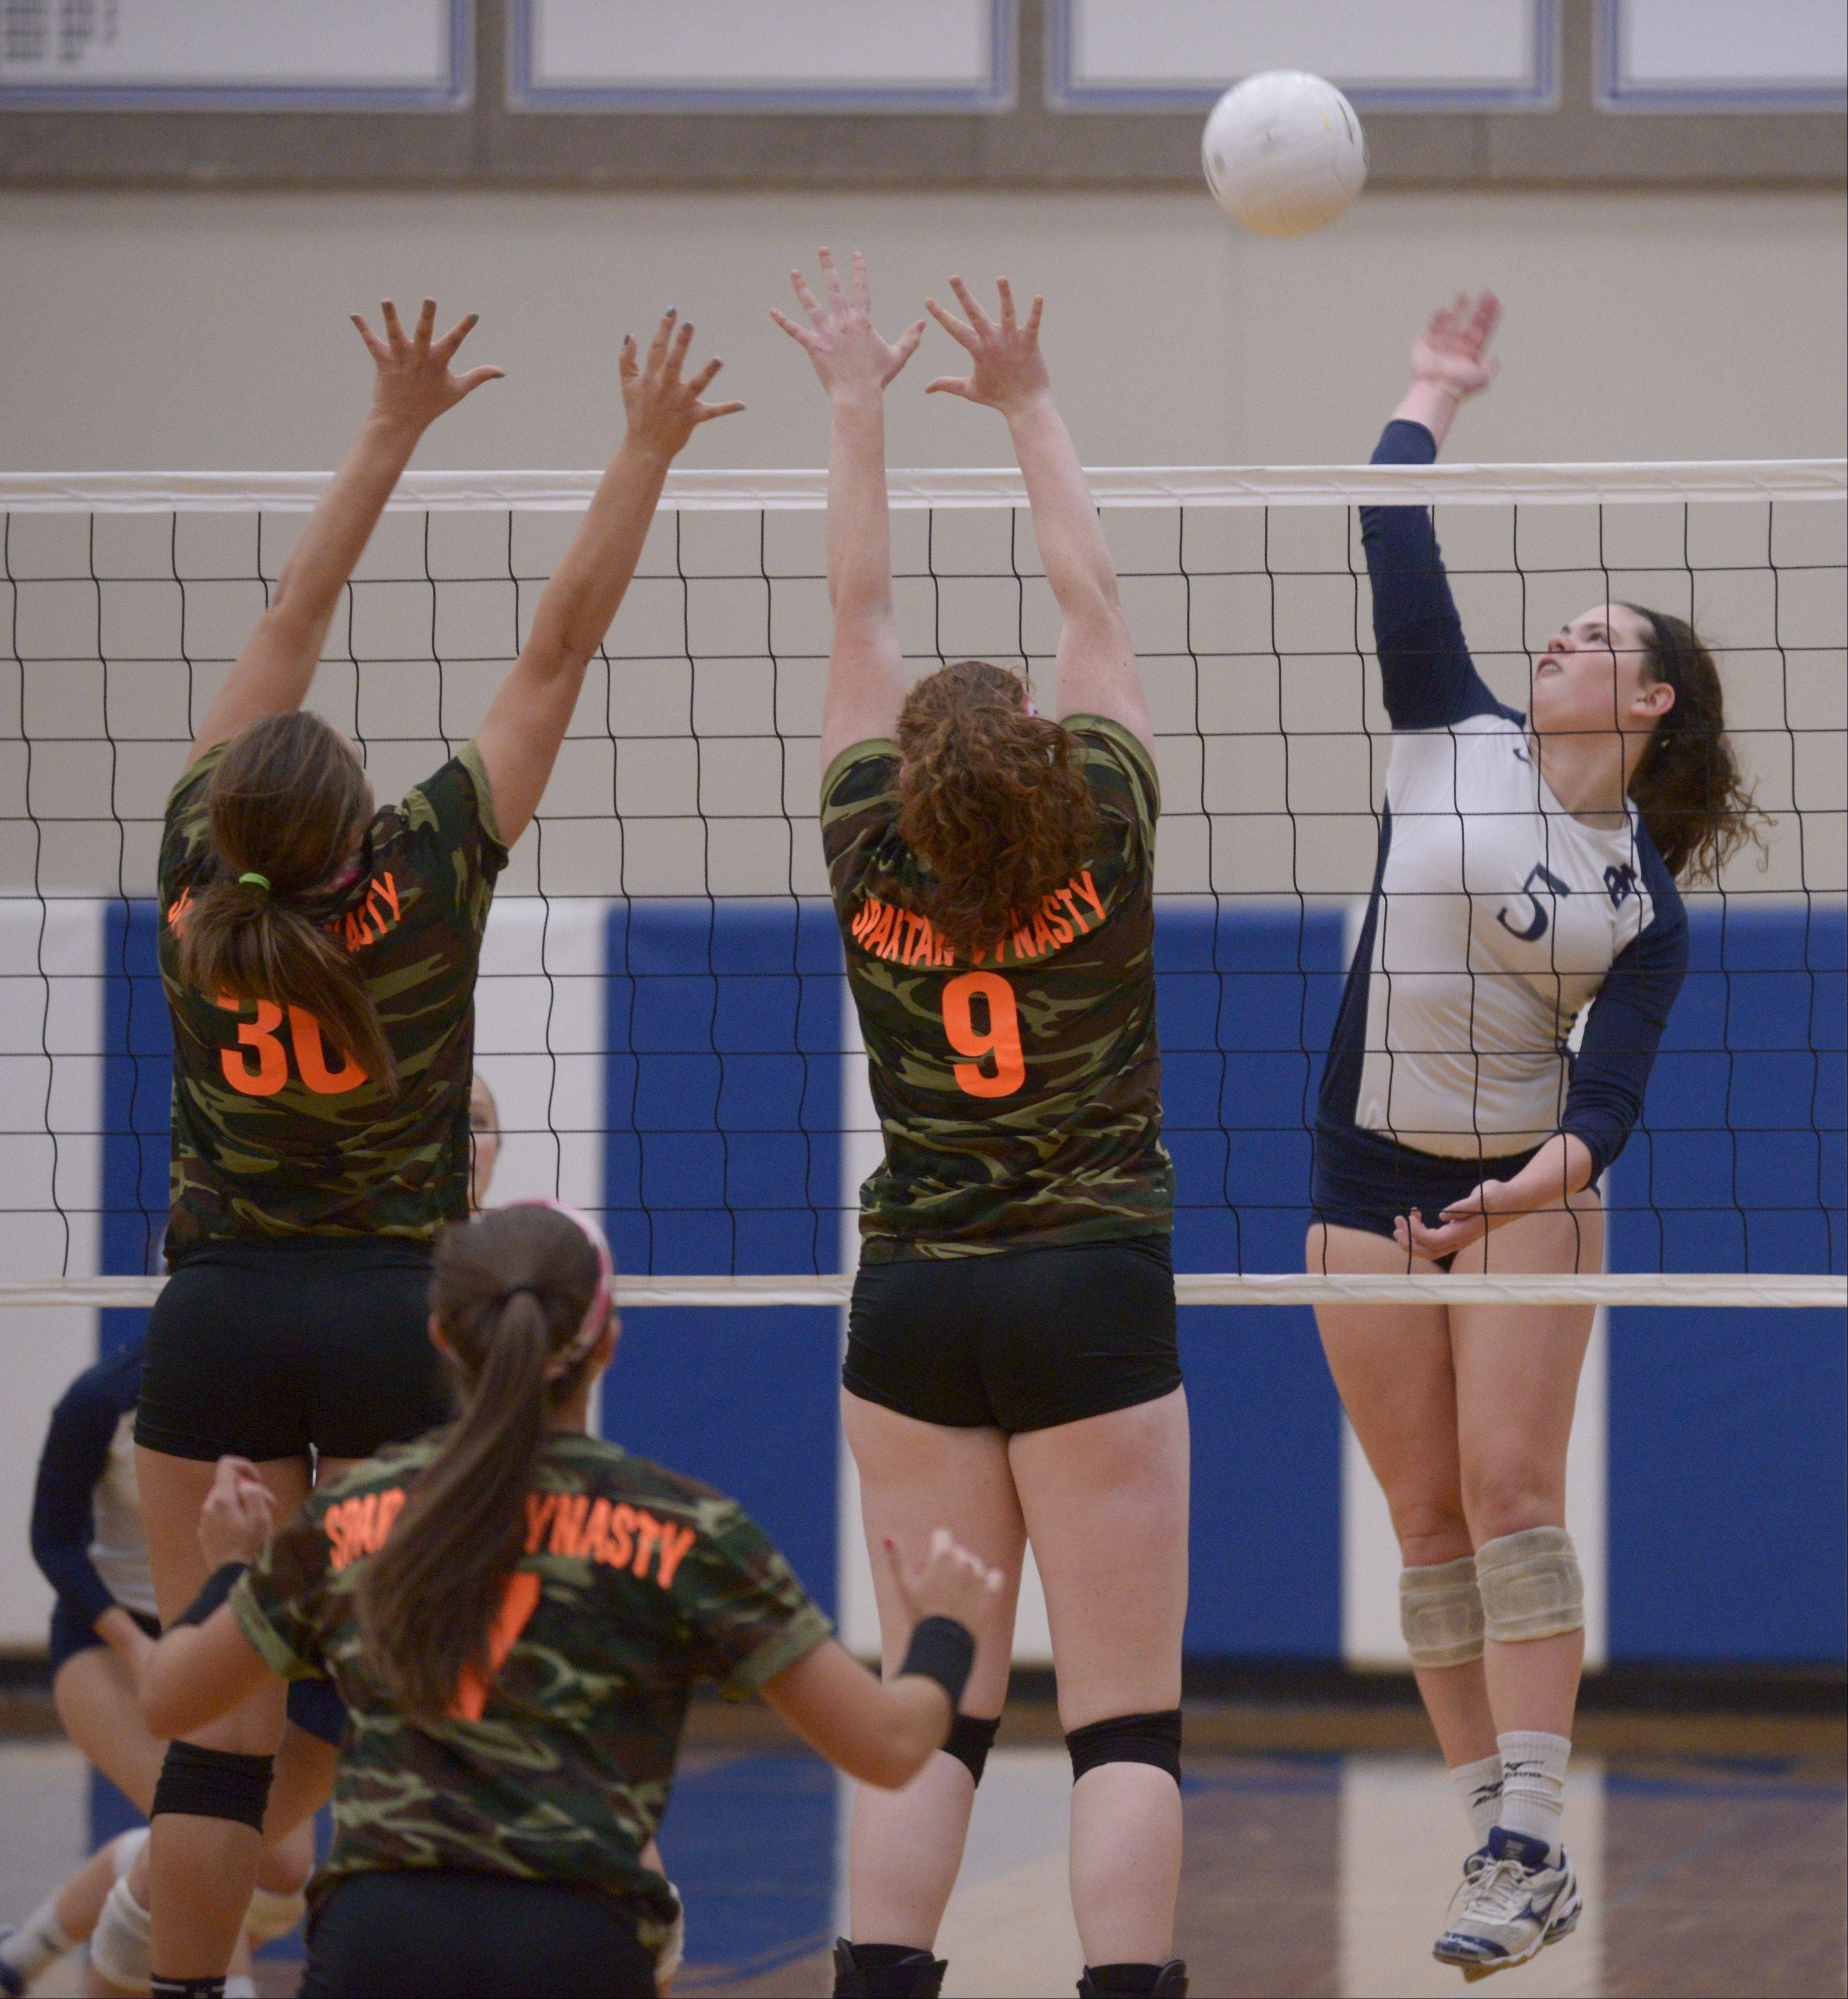 Kristin Acciavatti and Sarah Muisenga of St. Francis attempt to block a shot by Rory Manion of IC Catholic Prep during girls volleyball, Monday.